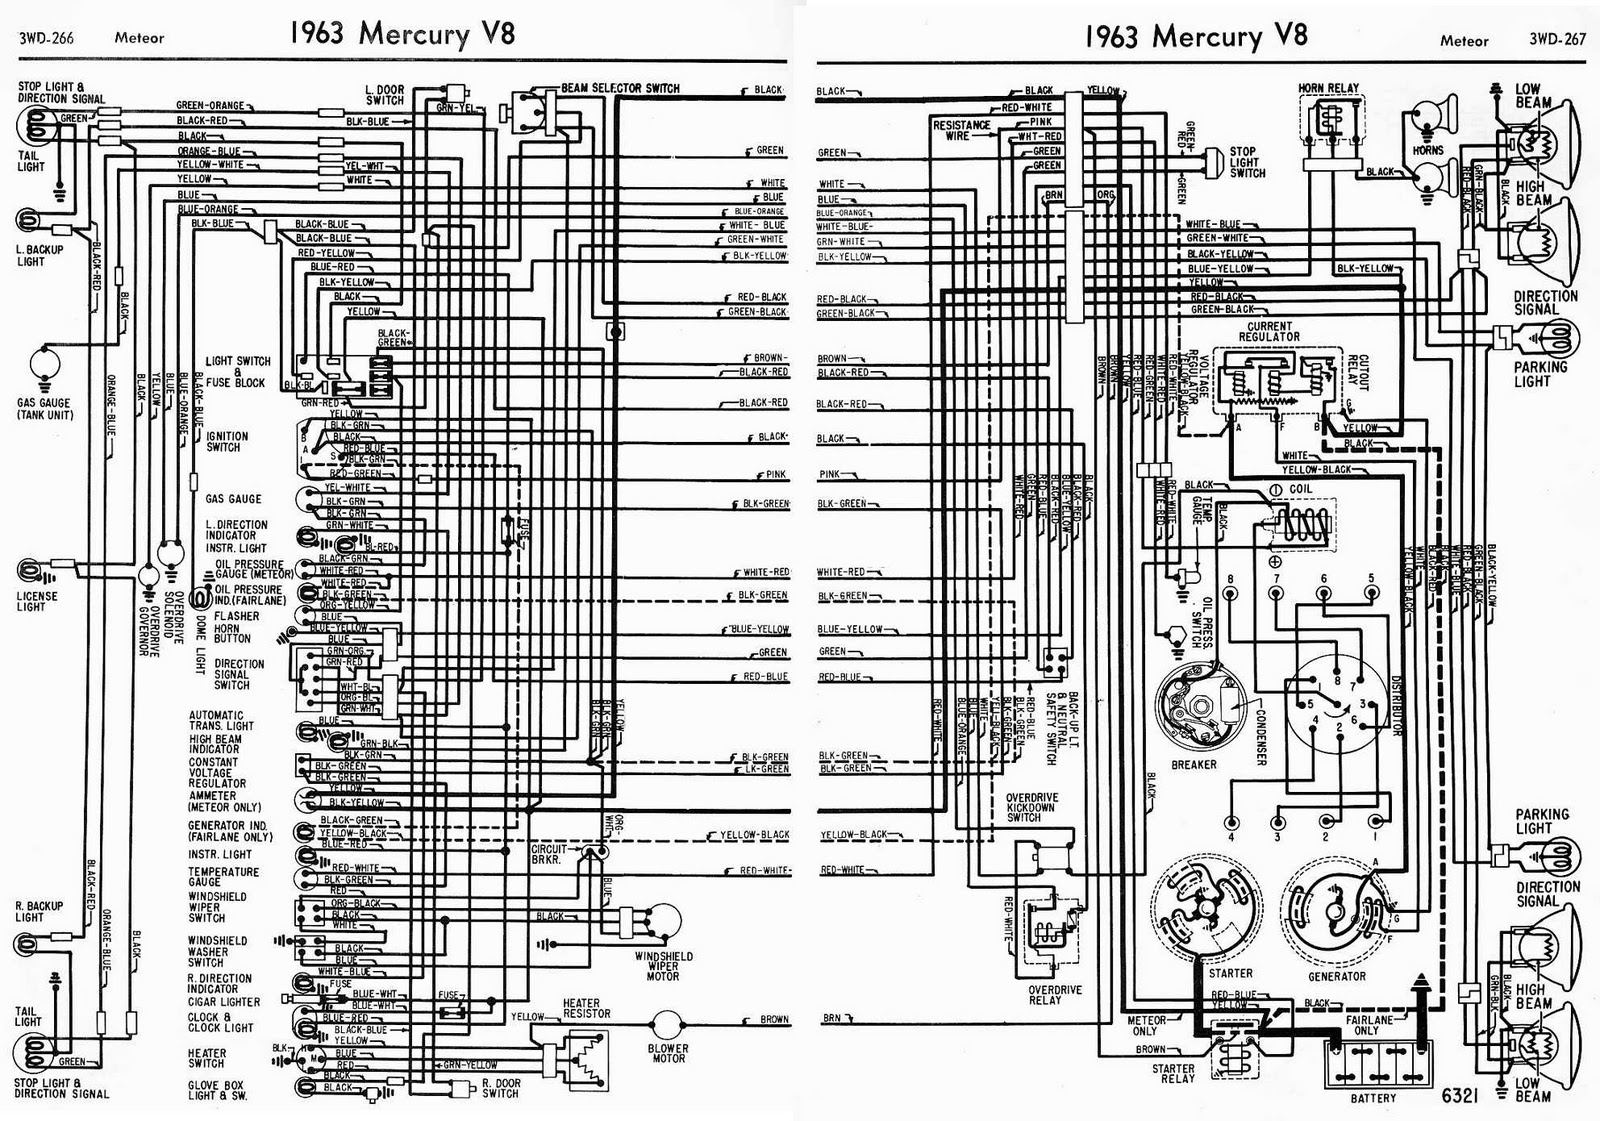 wiring diagrams 911 2011 1963 mercury v8 meteor complete wiring diagram